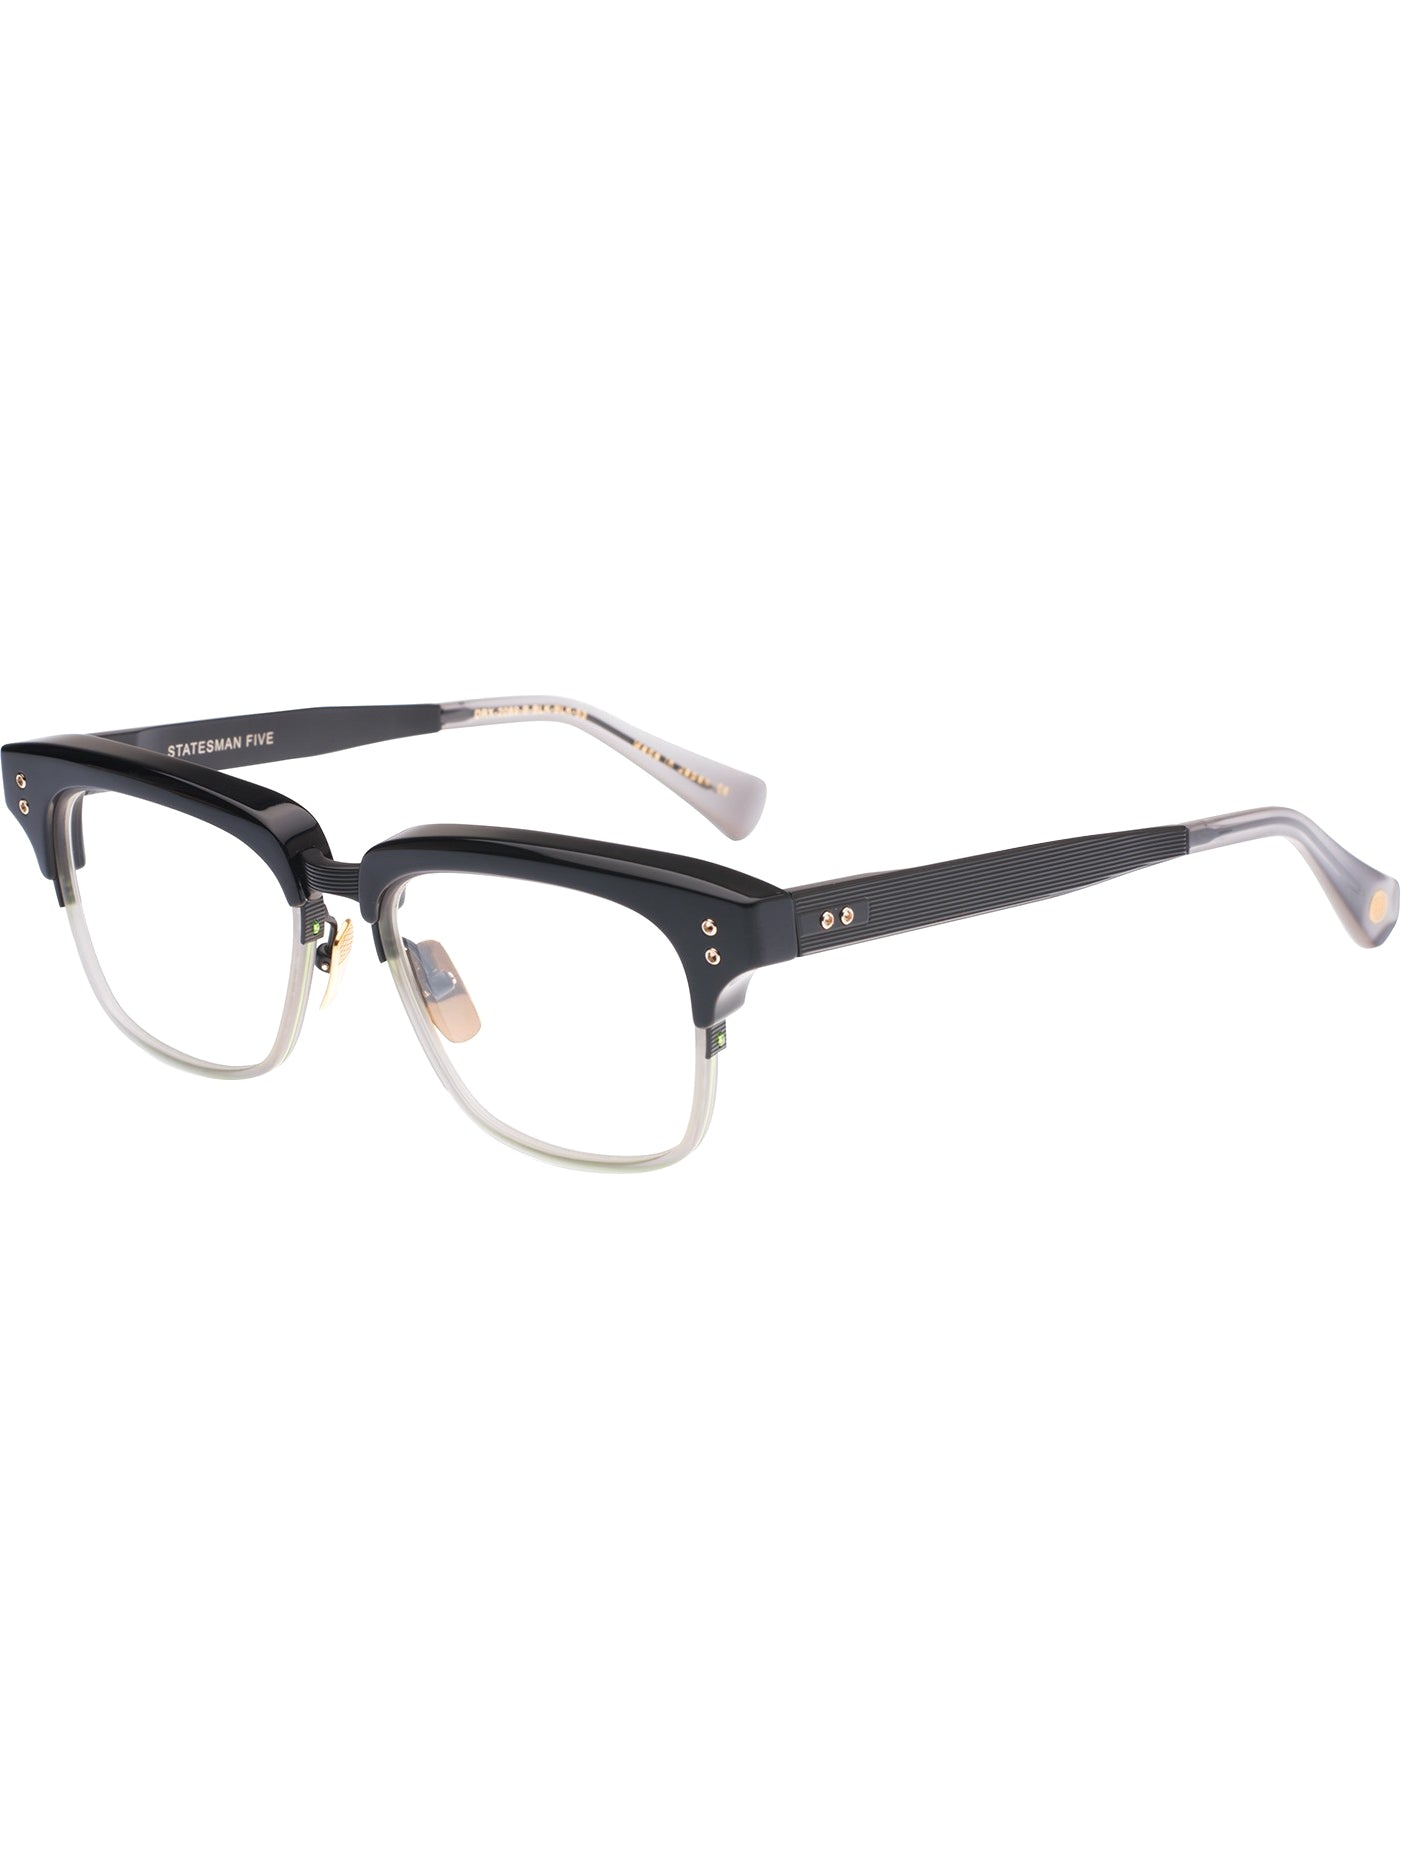 7d59451b51c Dita Statesman Five DRX 2089 B Glasses